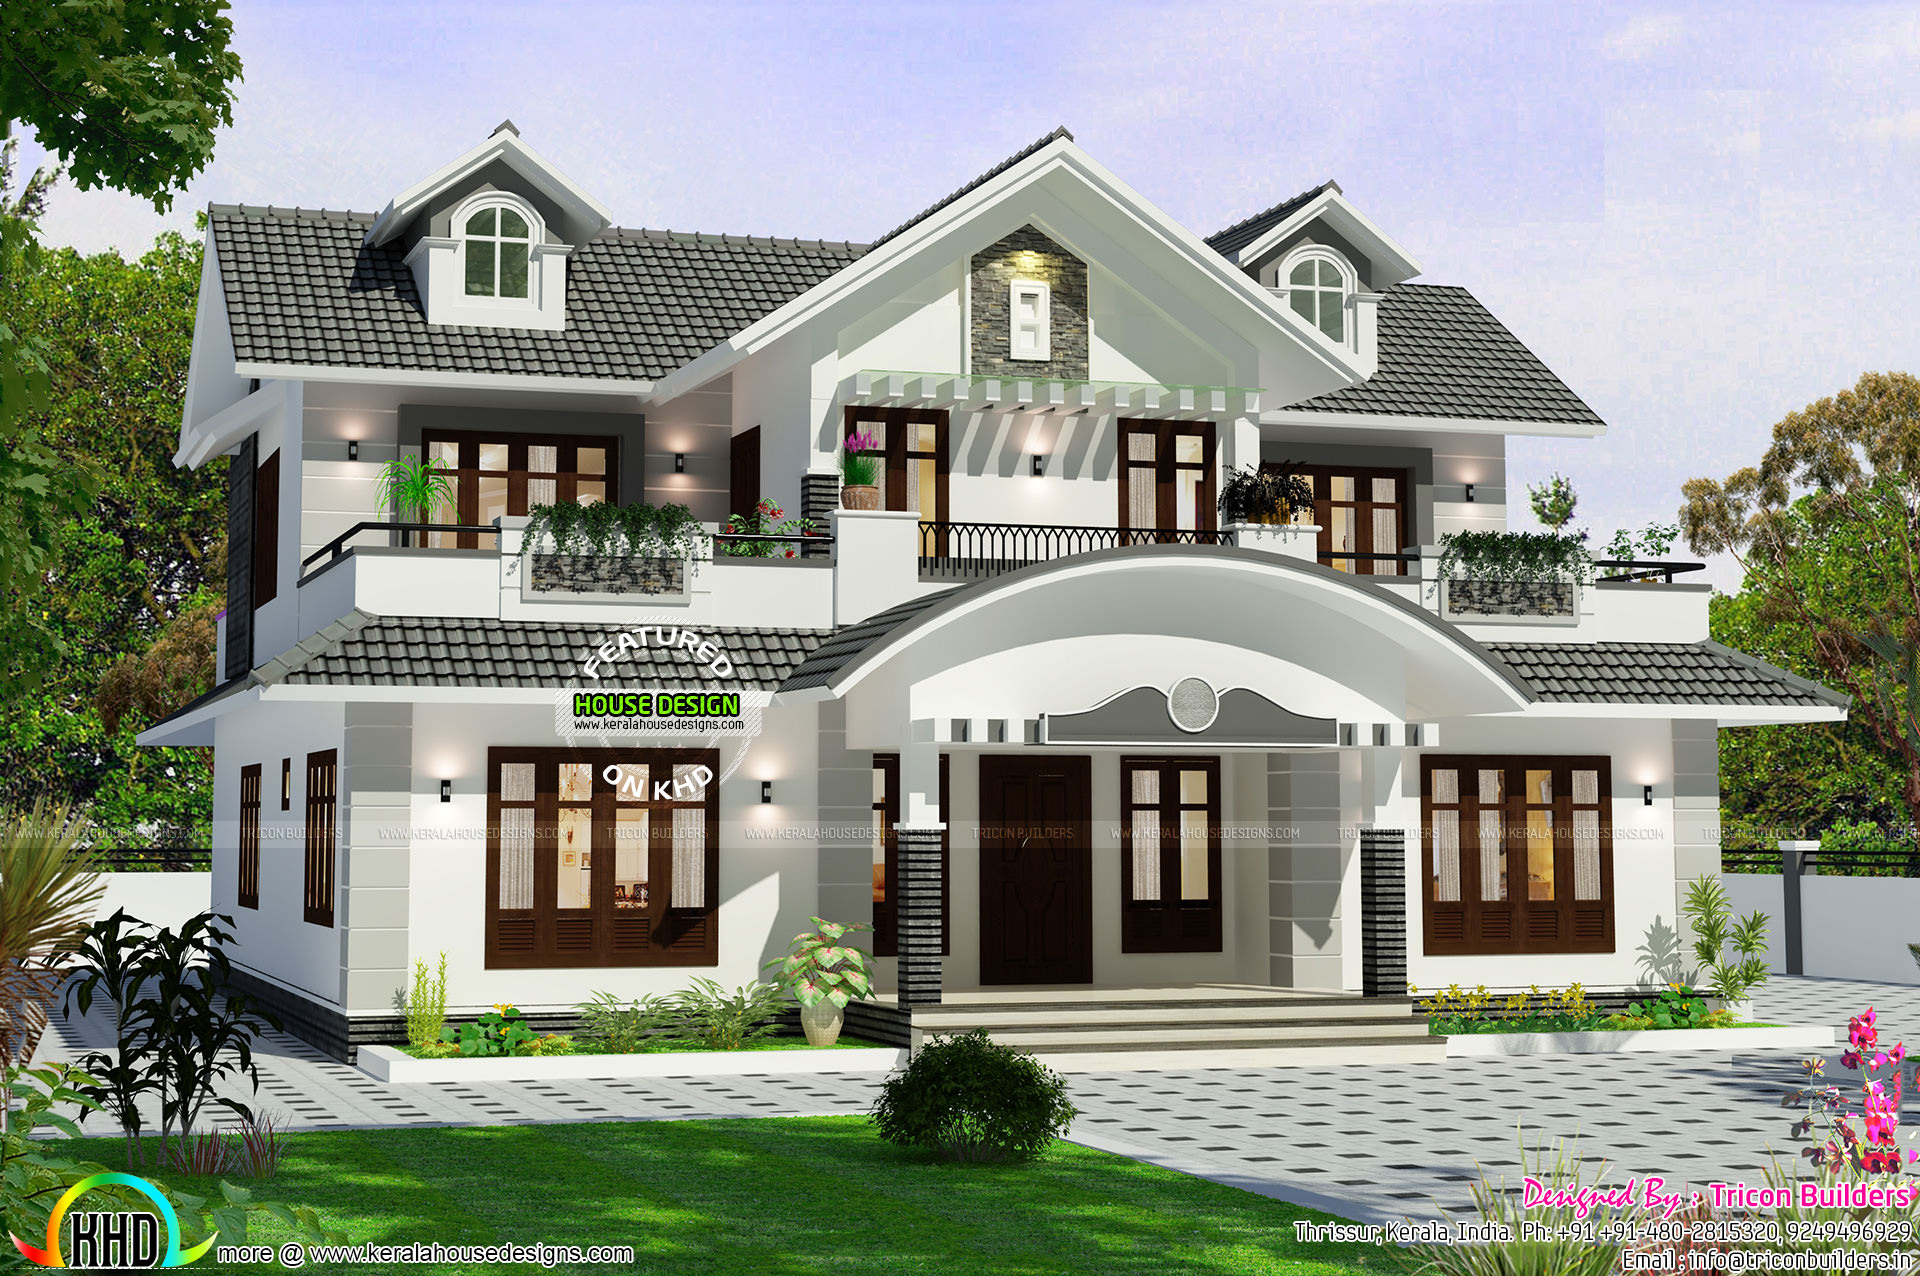 Designer home by tricon builders kerala home design and for Latest house designs 2015